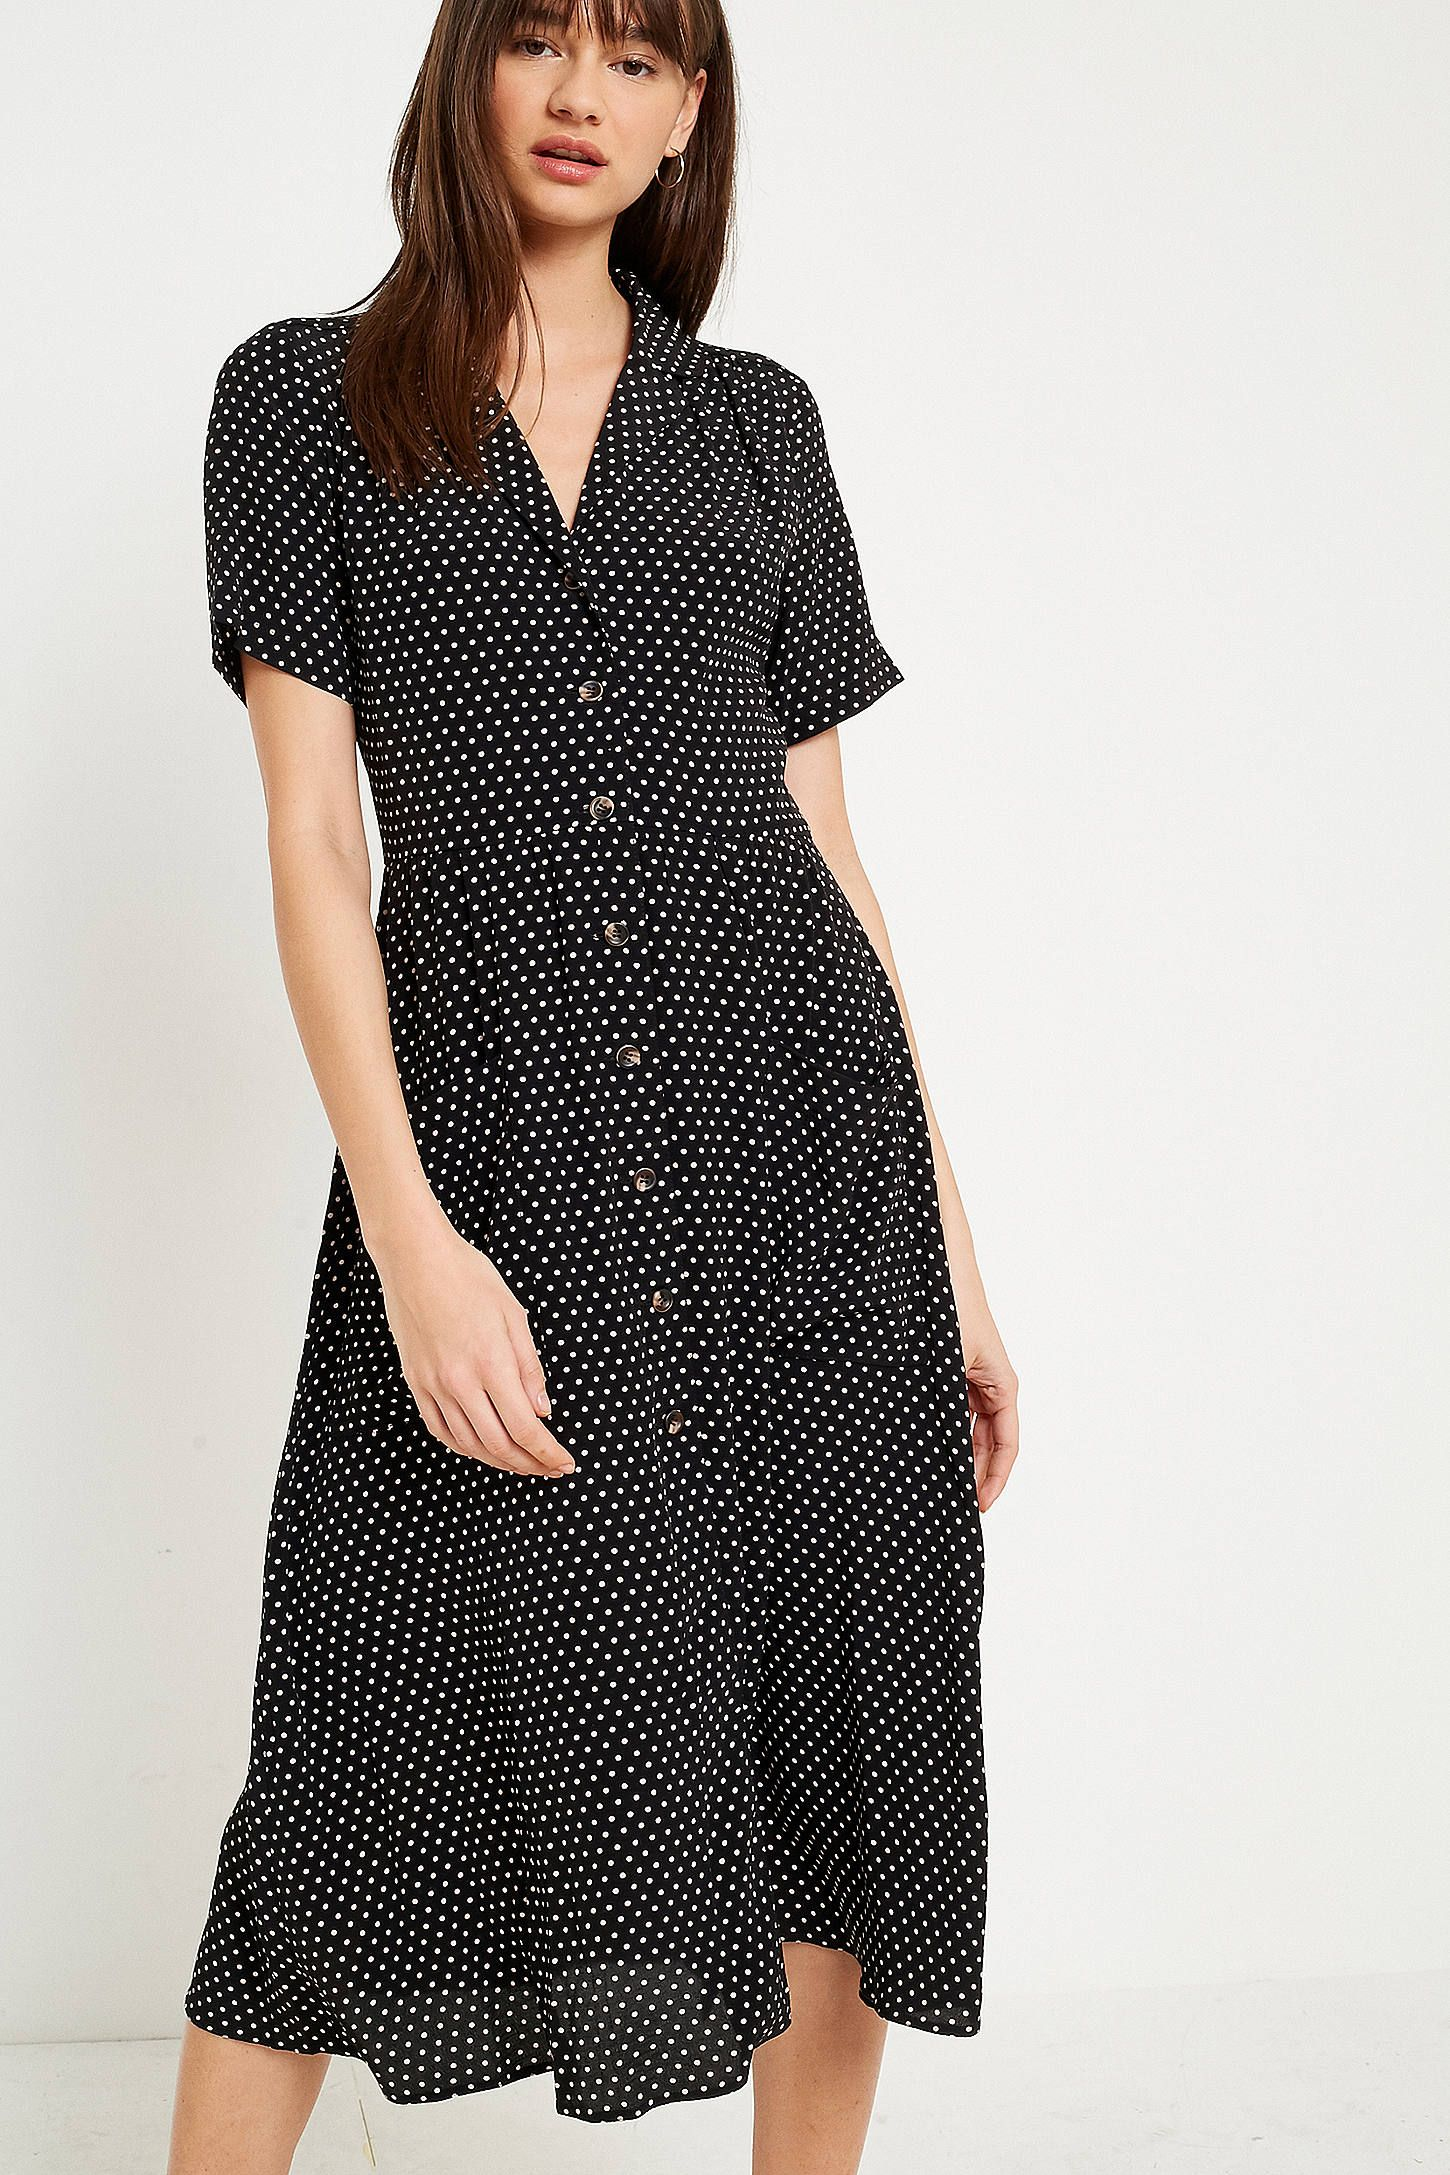 f06cb237d89 Shop Pins   Needles Polka Dot Midi Shirt Dress at Urban Outfitters today.  We carry all the latest styles